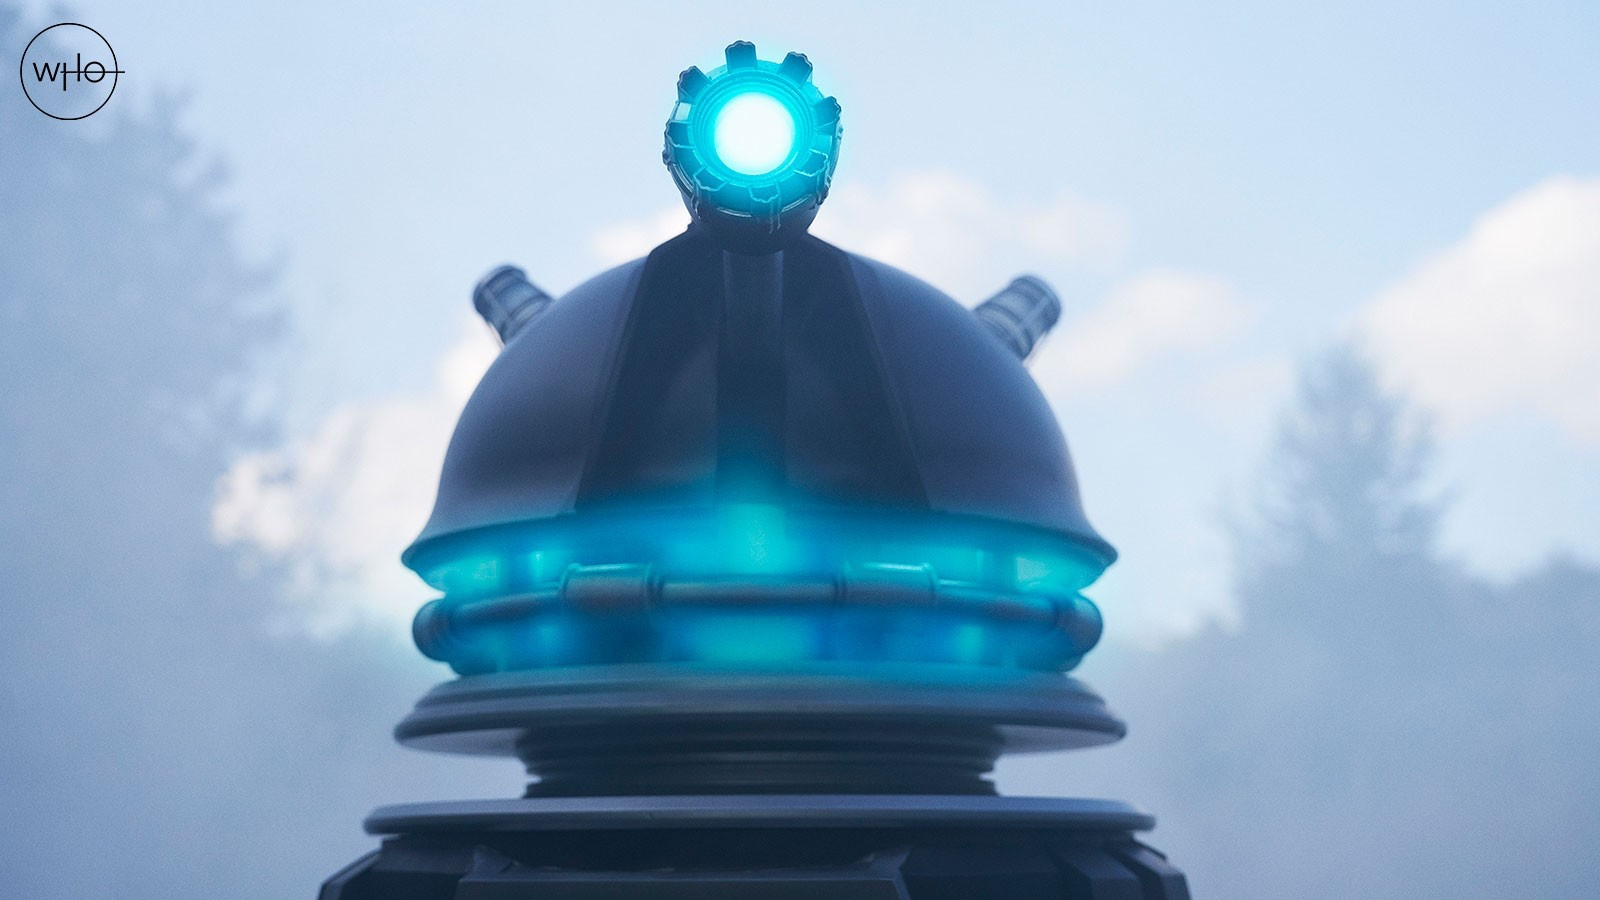 Doctor Who returns New Year's Day: Watch the trailer for Revolution of the Daleks